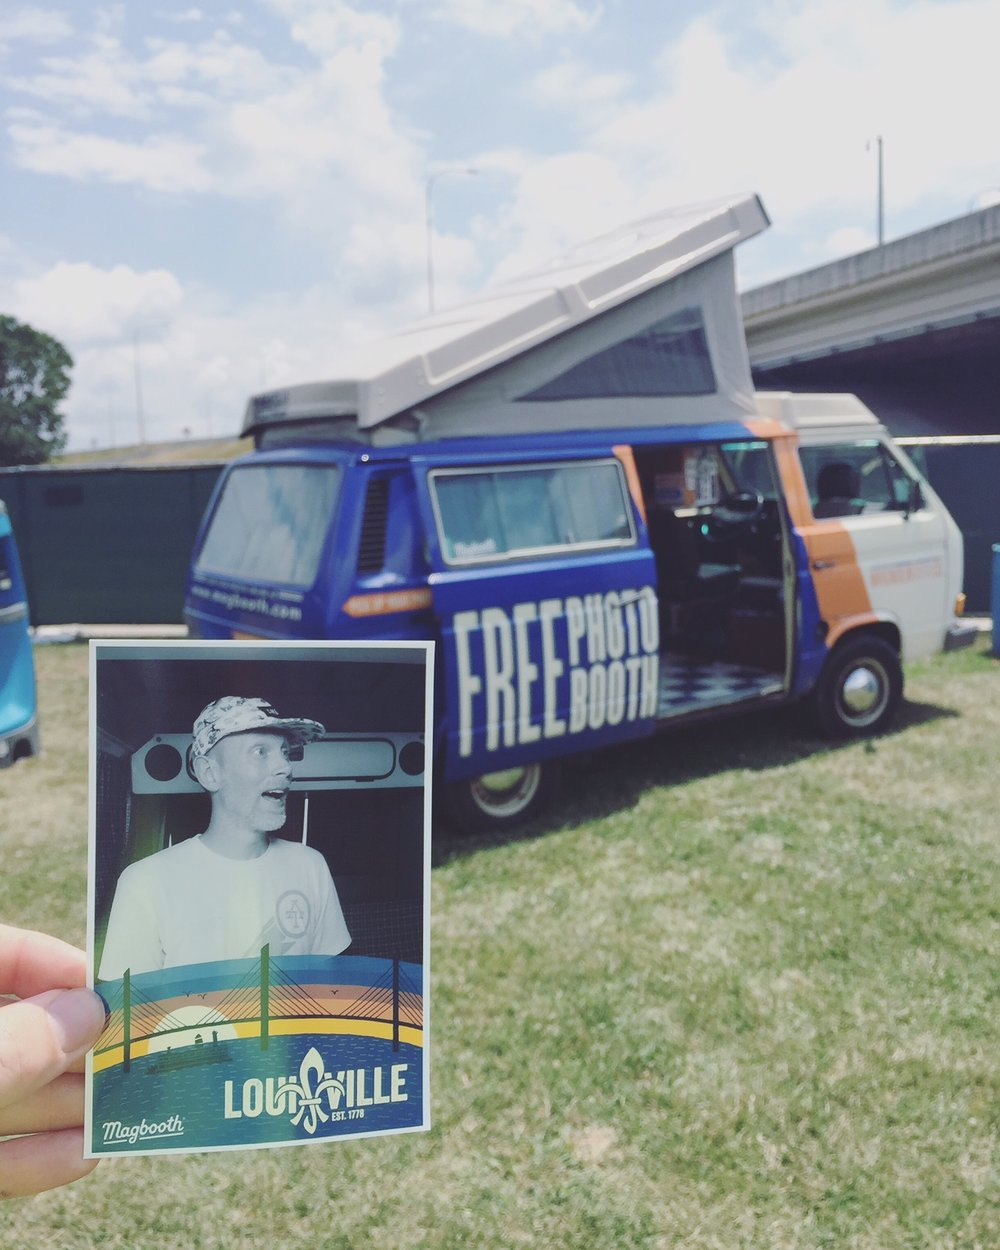 Magnolia Photo Booth Co - All DayMagbooth is bringing Maggie - the photo booth van! Commemorate your Bluegrass VegFest fun with a photo strip!